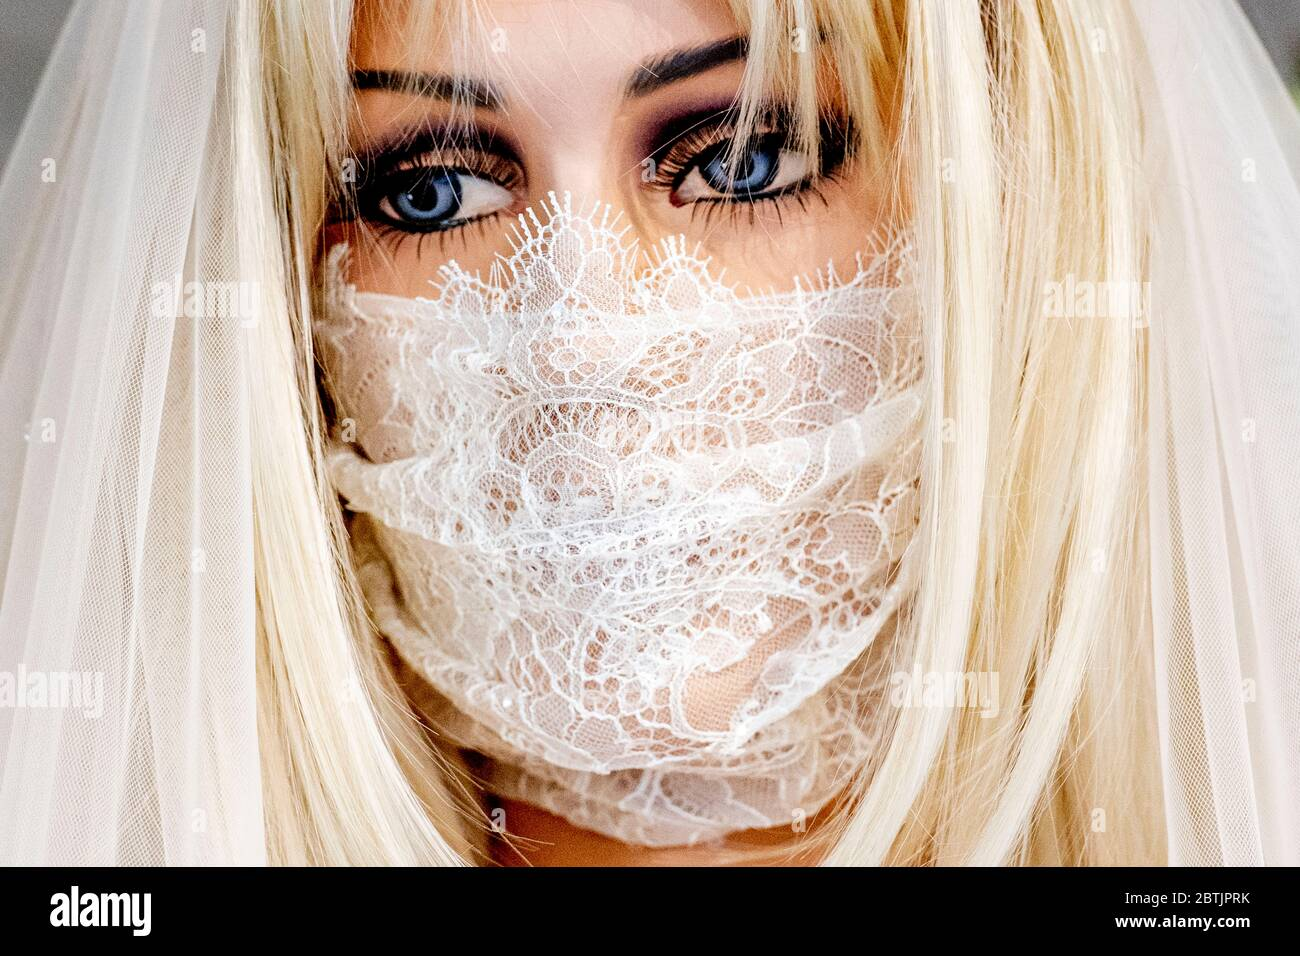 A View Of A Mannequin Dressed With A Bridal Laced Facemask A Bridal Shop In Rotterdam Makes Face Masks To Match Wedding Dresses For Upcoming Brides Stock Photo Alamy